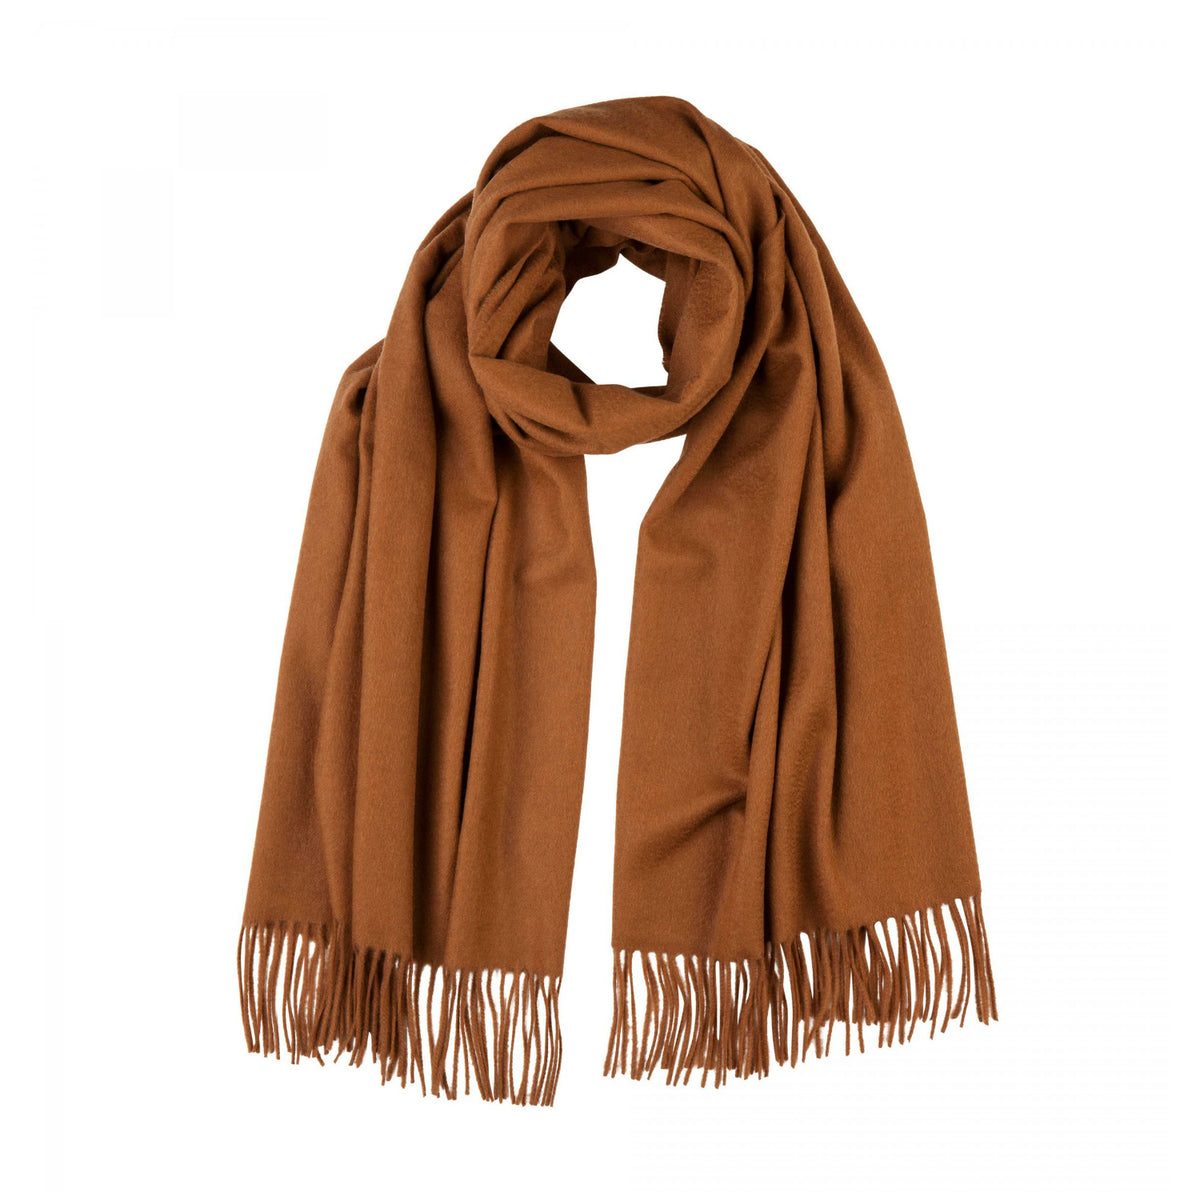 Lomond Cashmere | Vicuna Brown Cashmere Stole | Wrap | Large Scarf | Shop at The Cashmere Choice | London